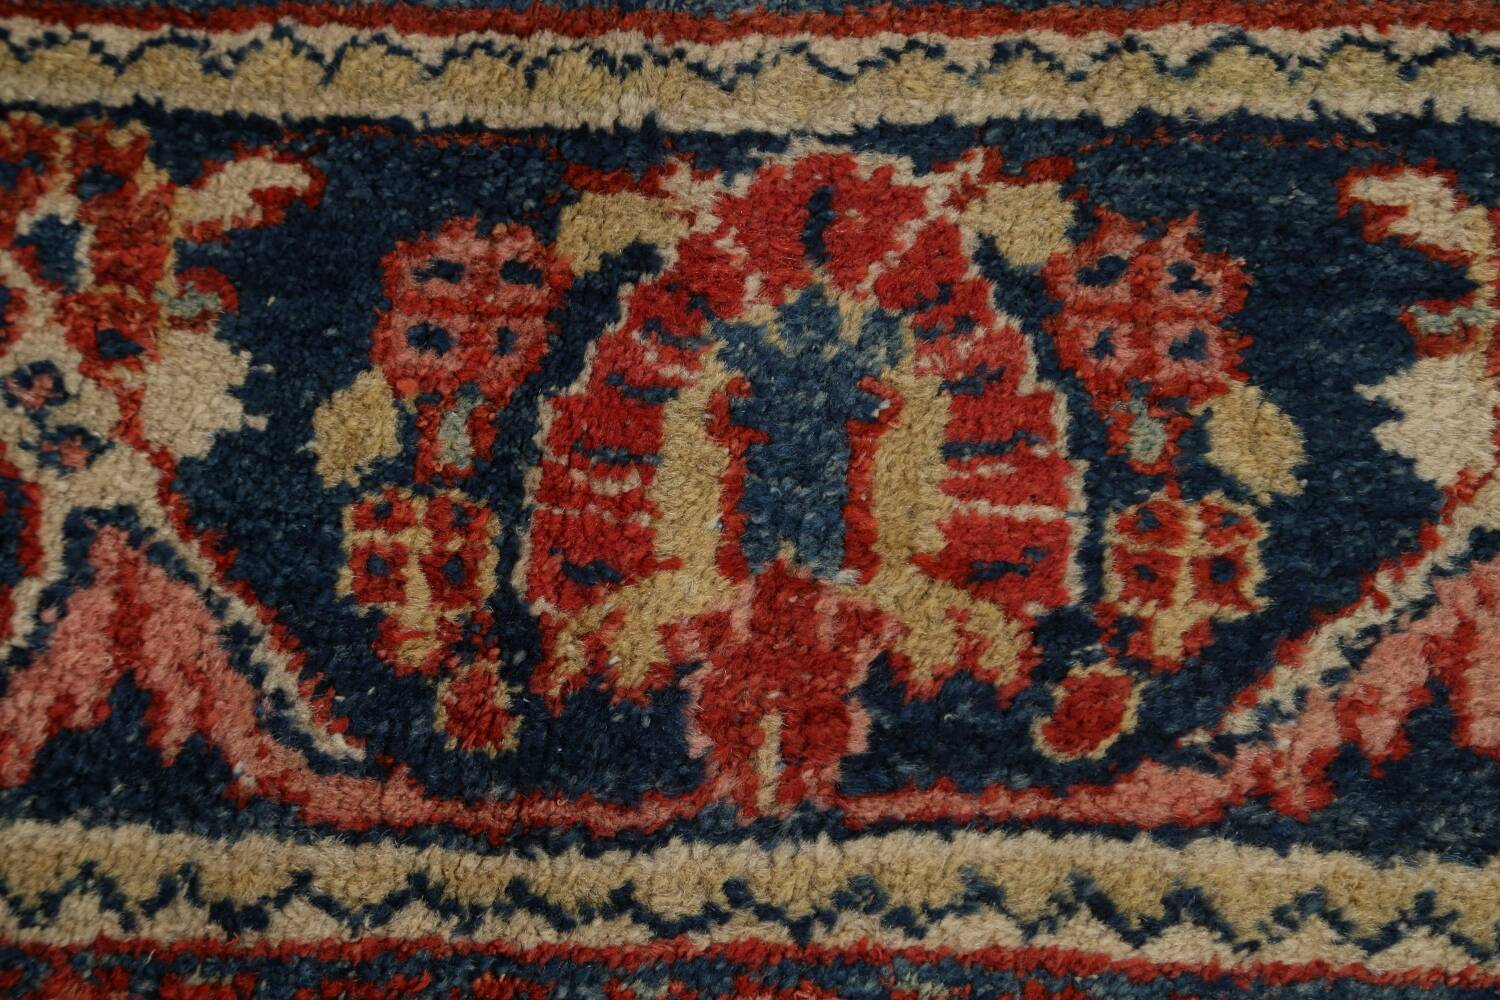 Antique Floral Mahal Persian Area Rug 8x11 image 9